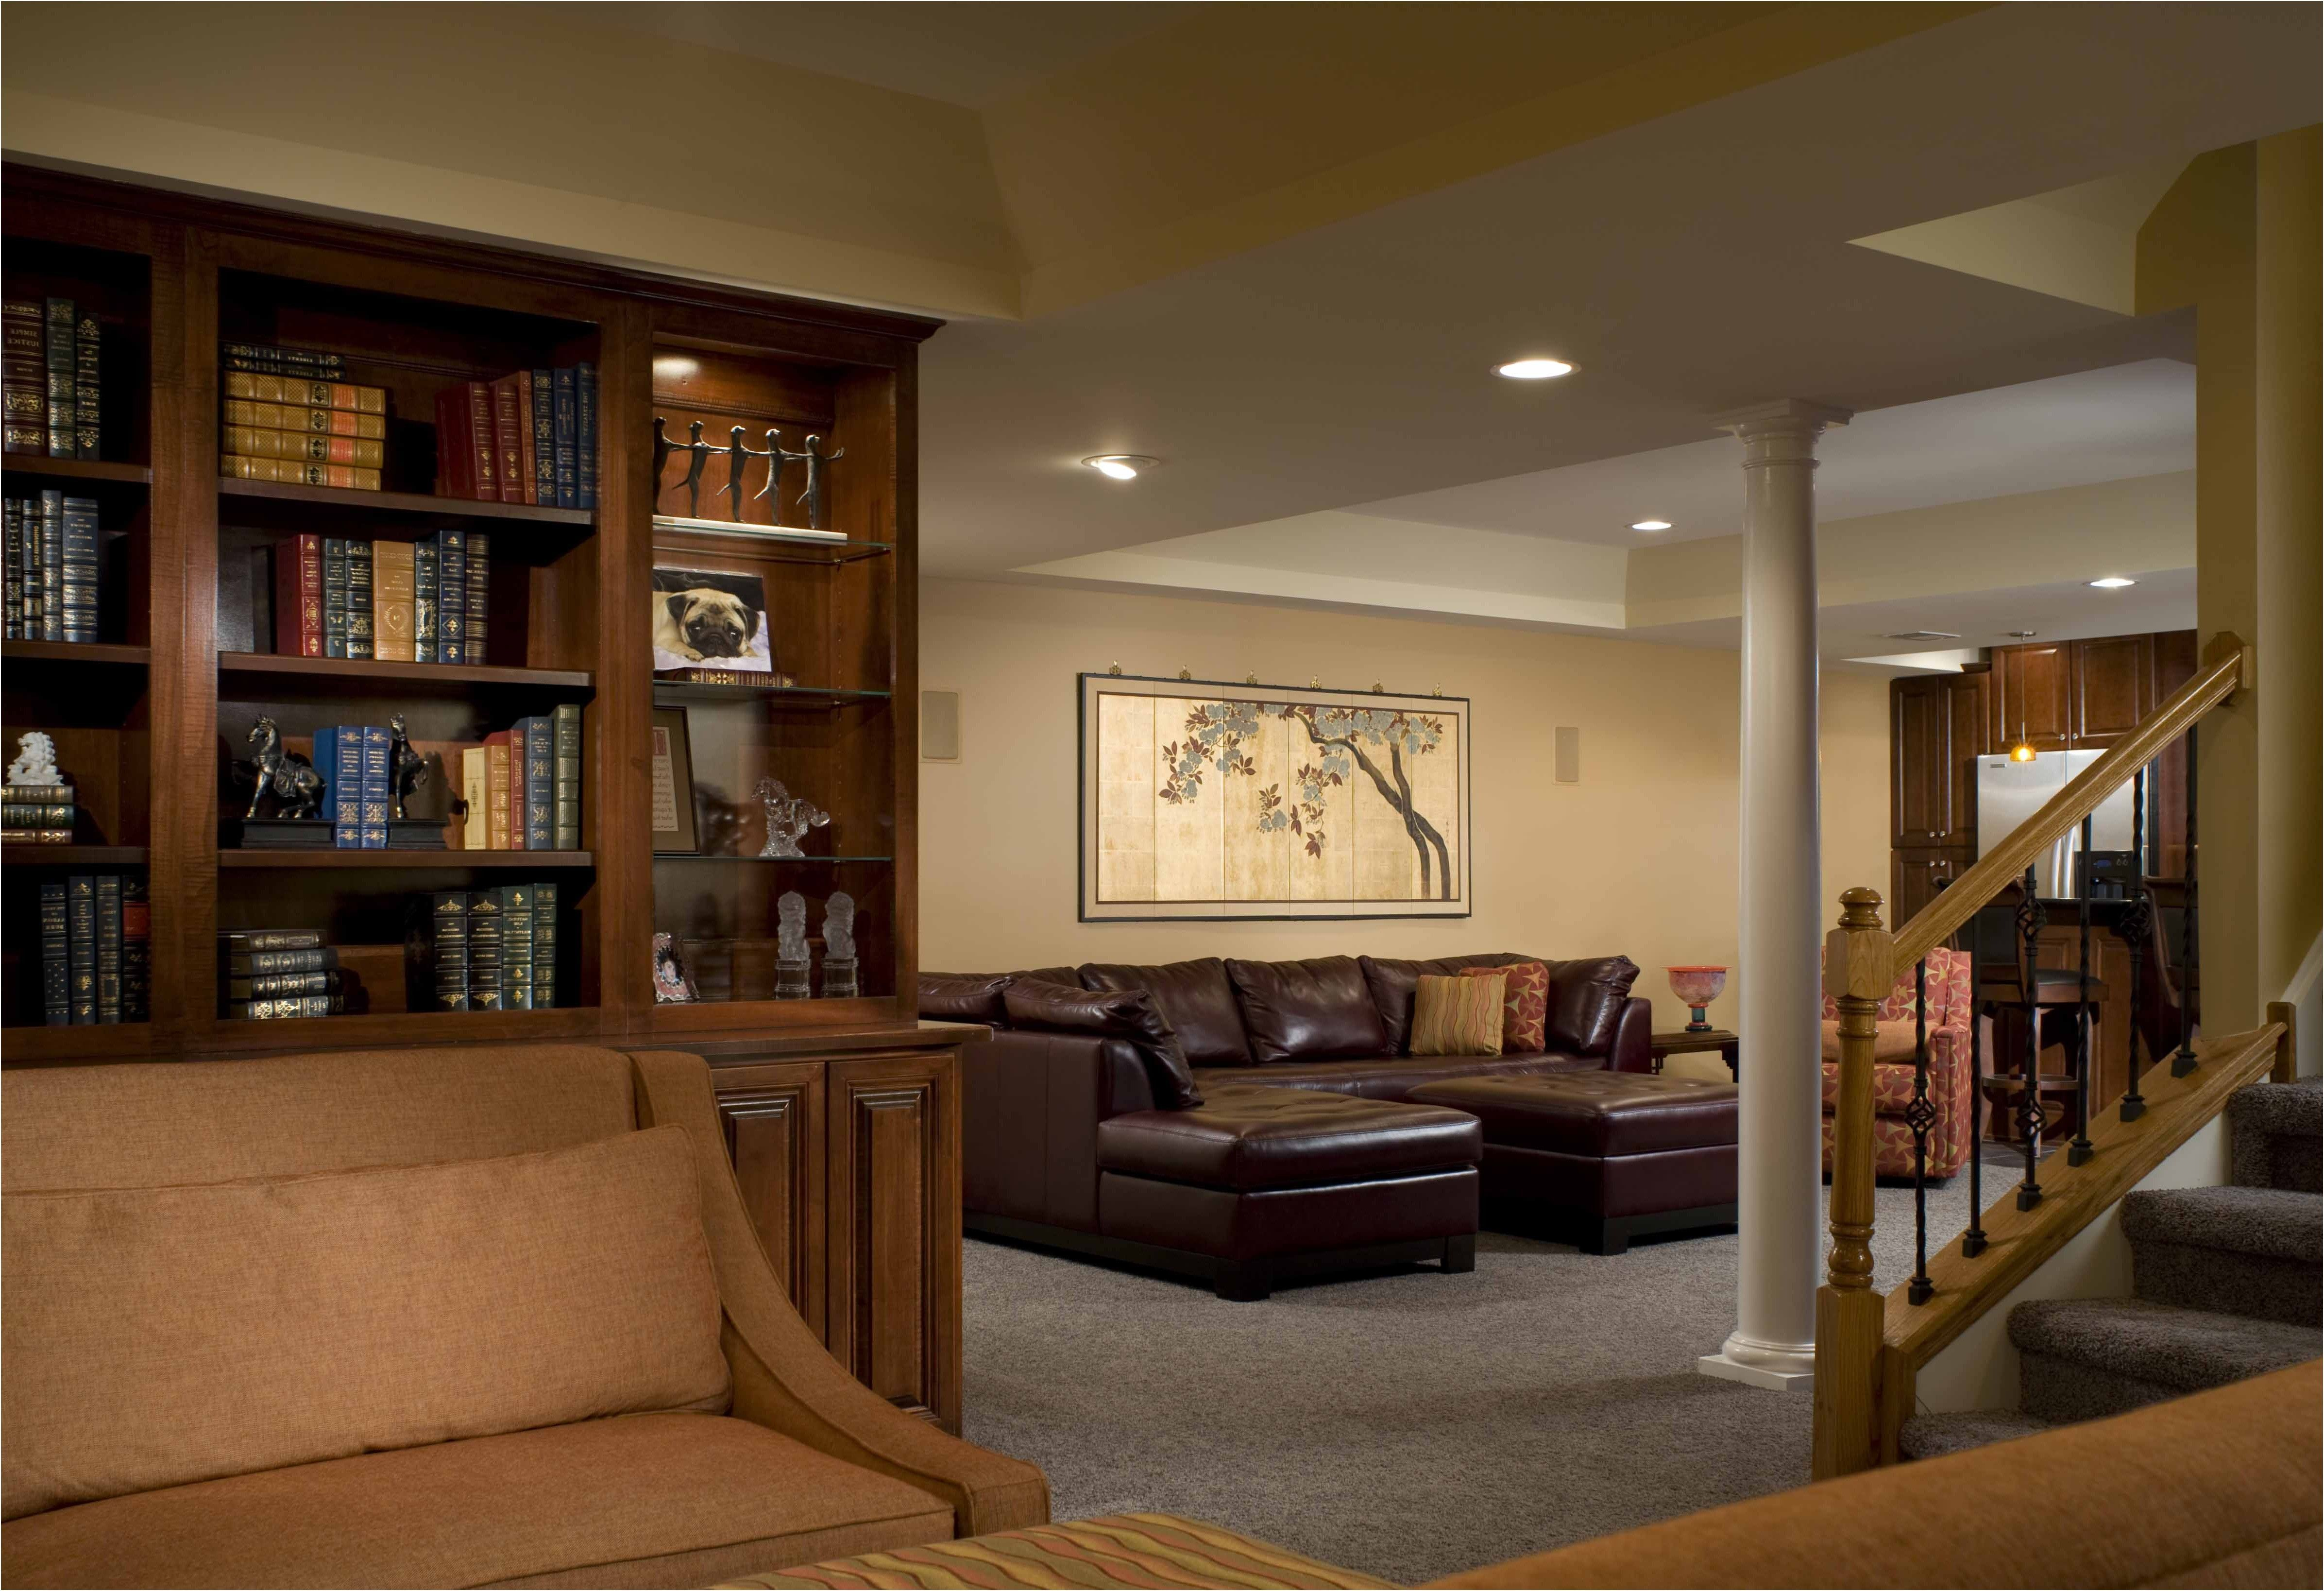 30 basement remodeling ideas inspiration from Home